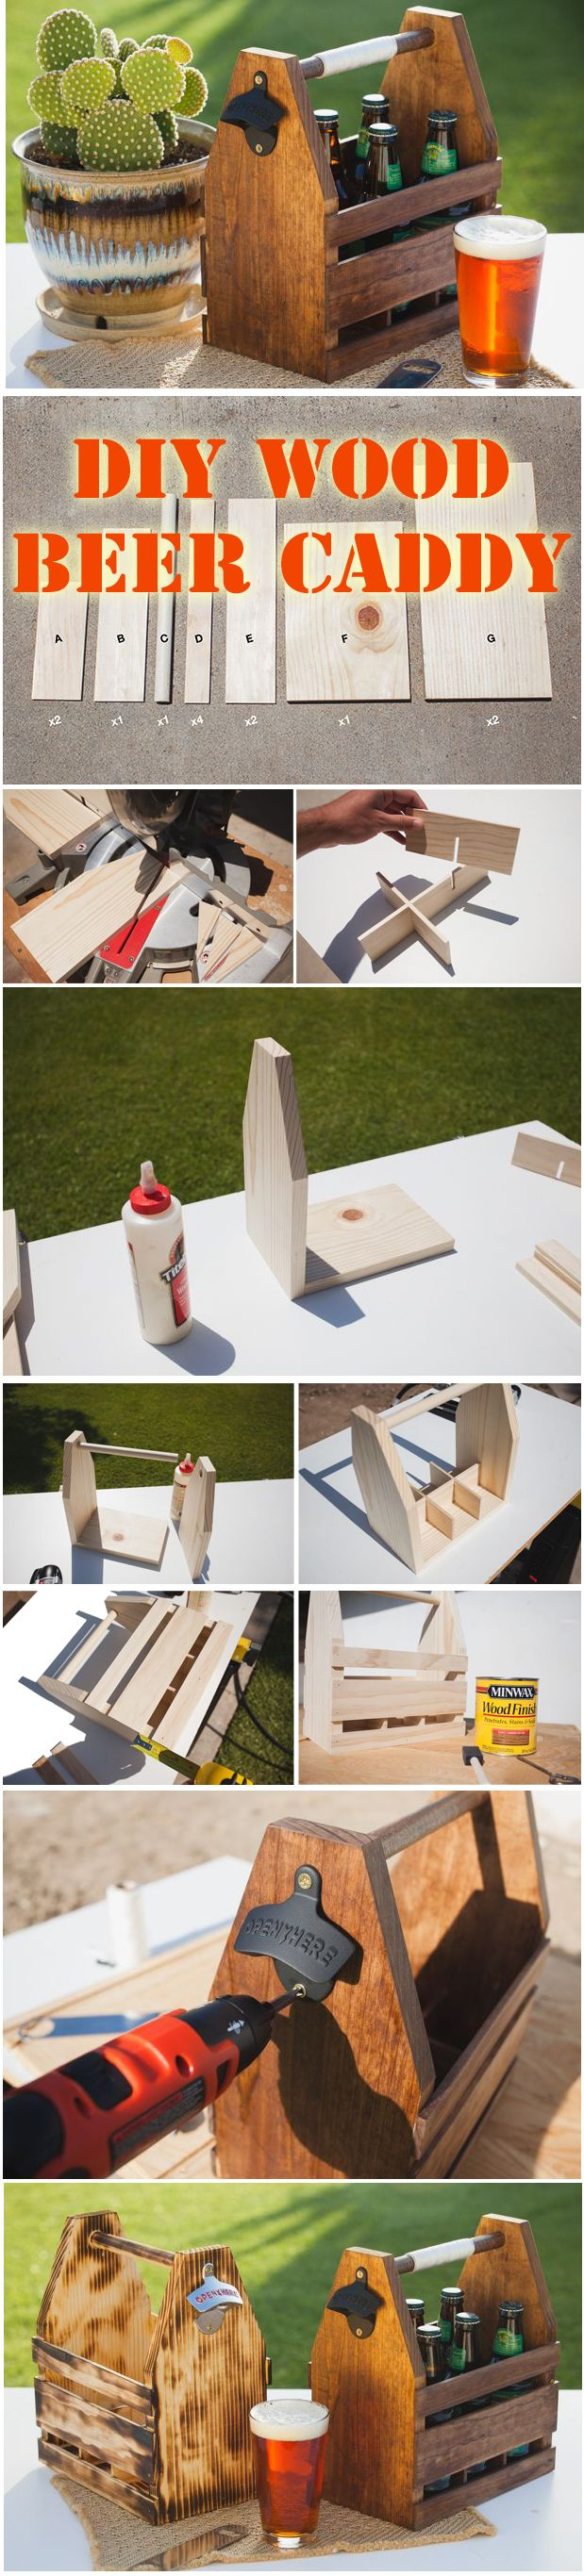 Seems easy enough!  Make your own beer caddy for summer bbqs or a personalized gift for him! #diy